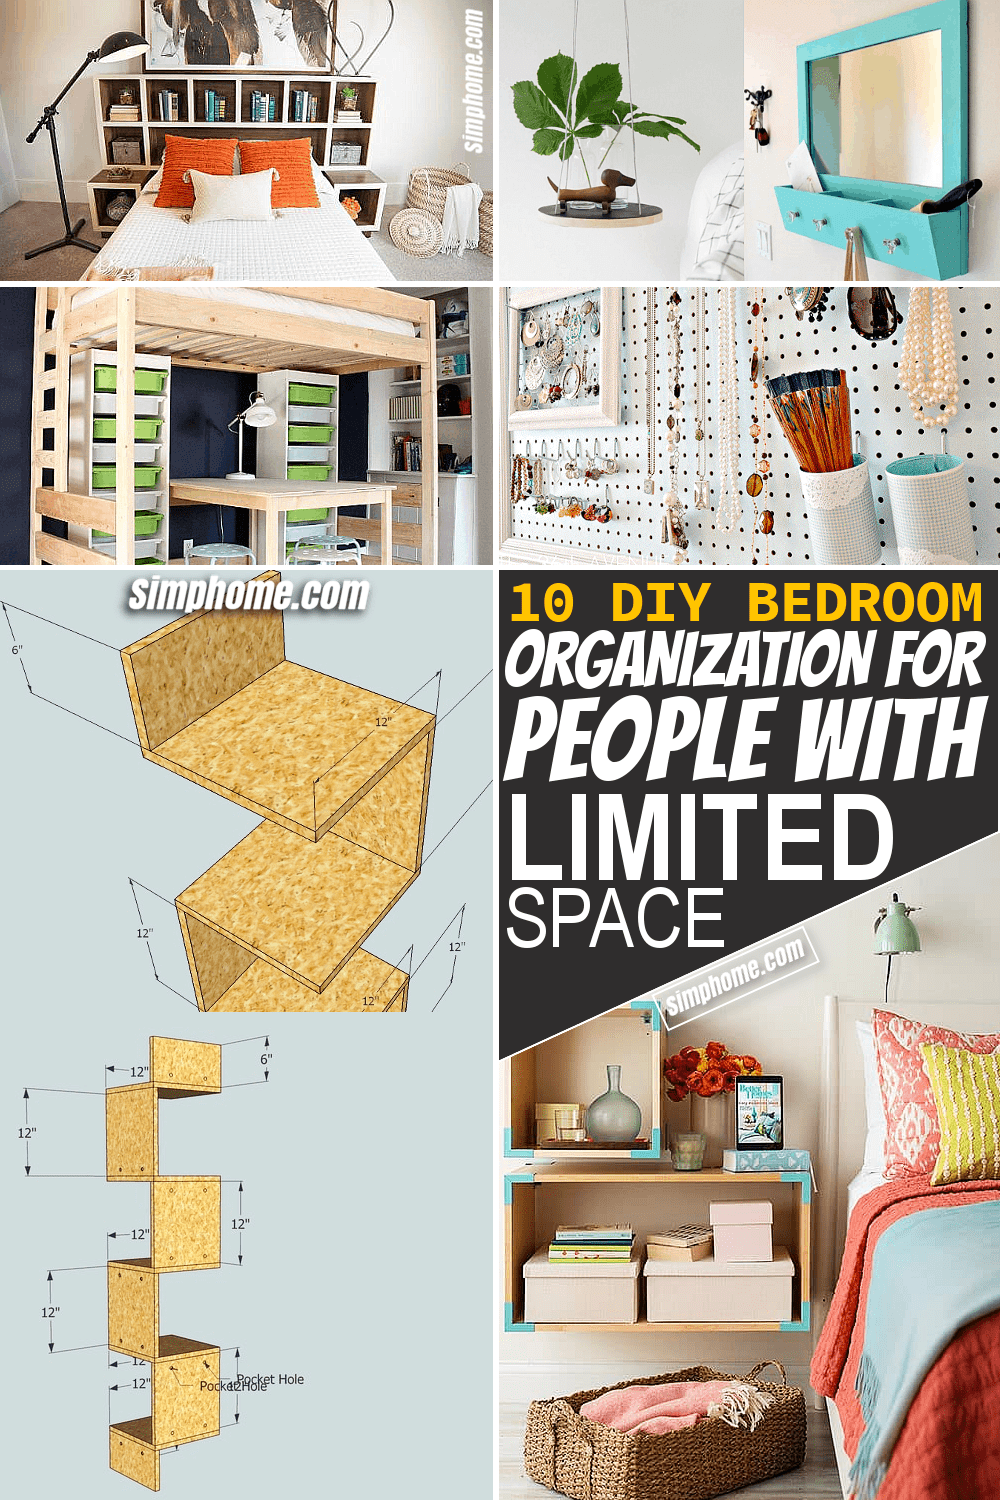 Simphome.com 10 Bedroom Organization DIY for People with Limited Floor Space Thumbnail Video